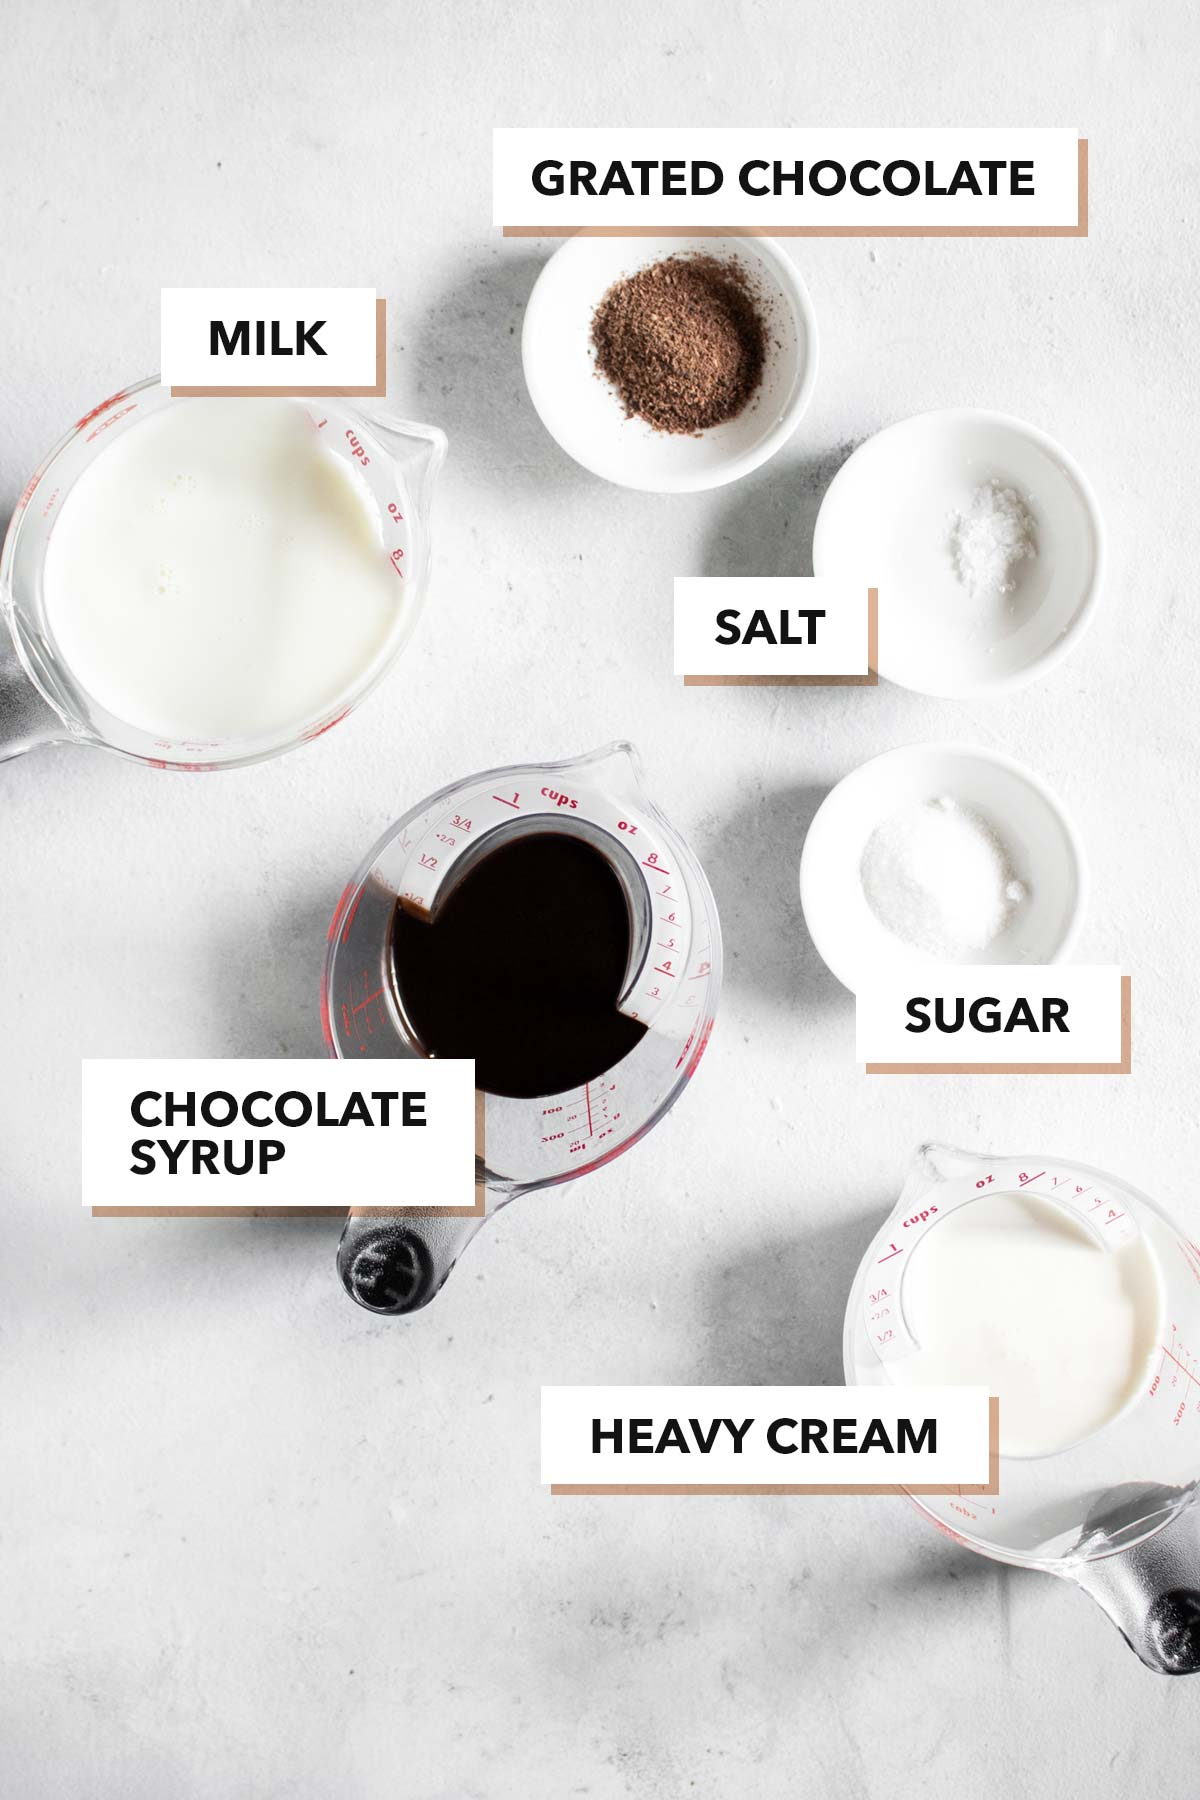 Hot chocolate ingredients on a surface.